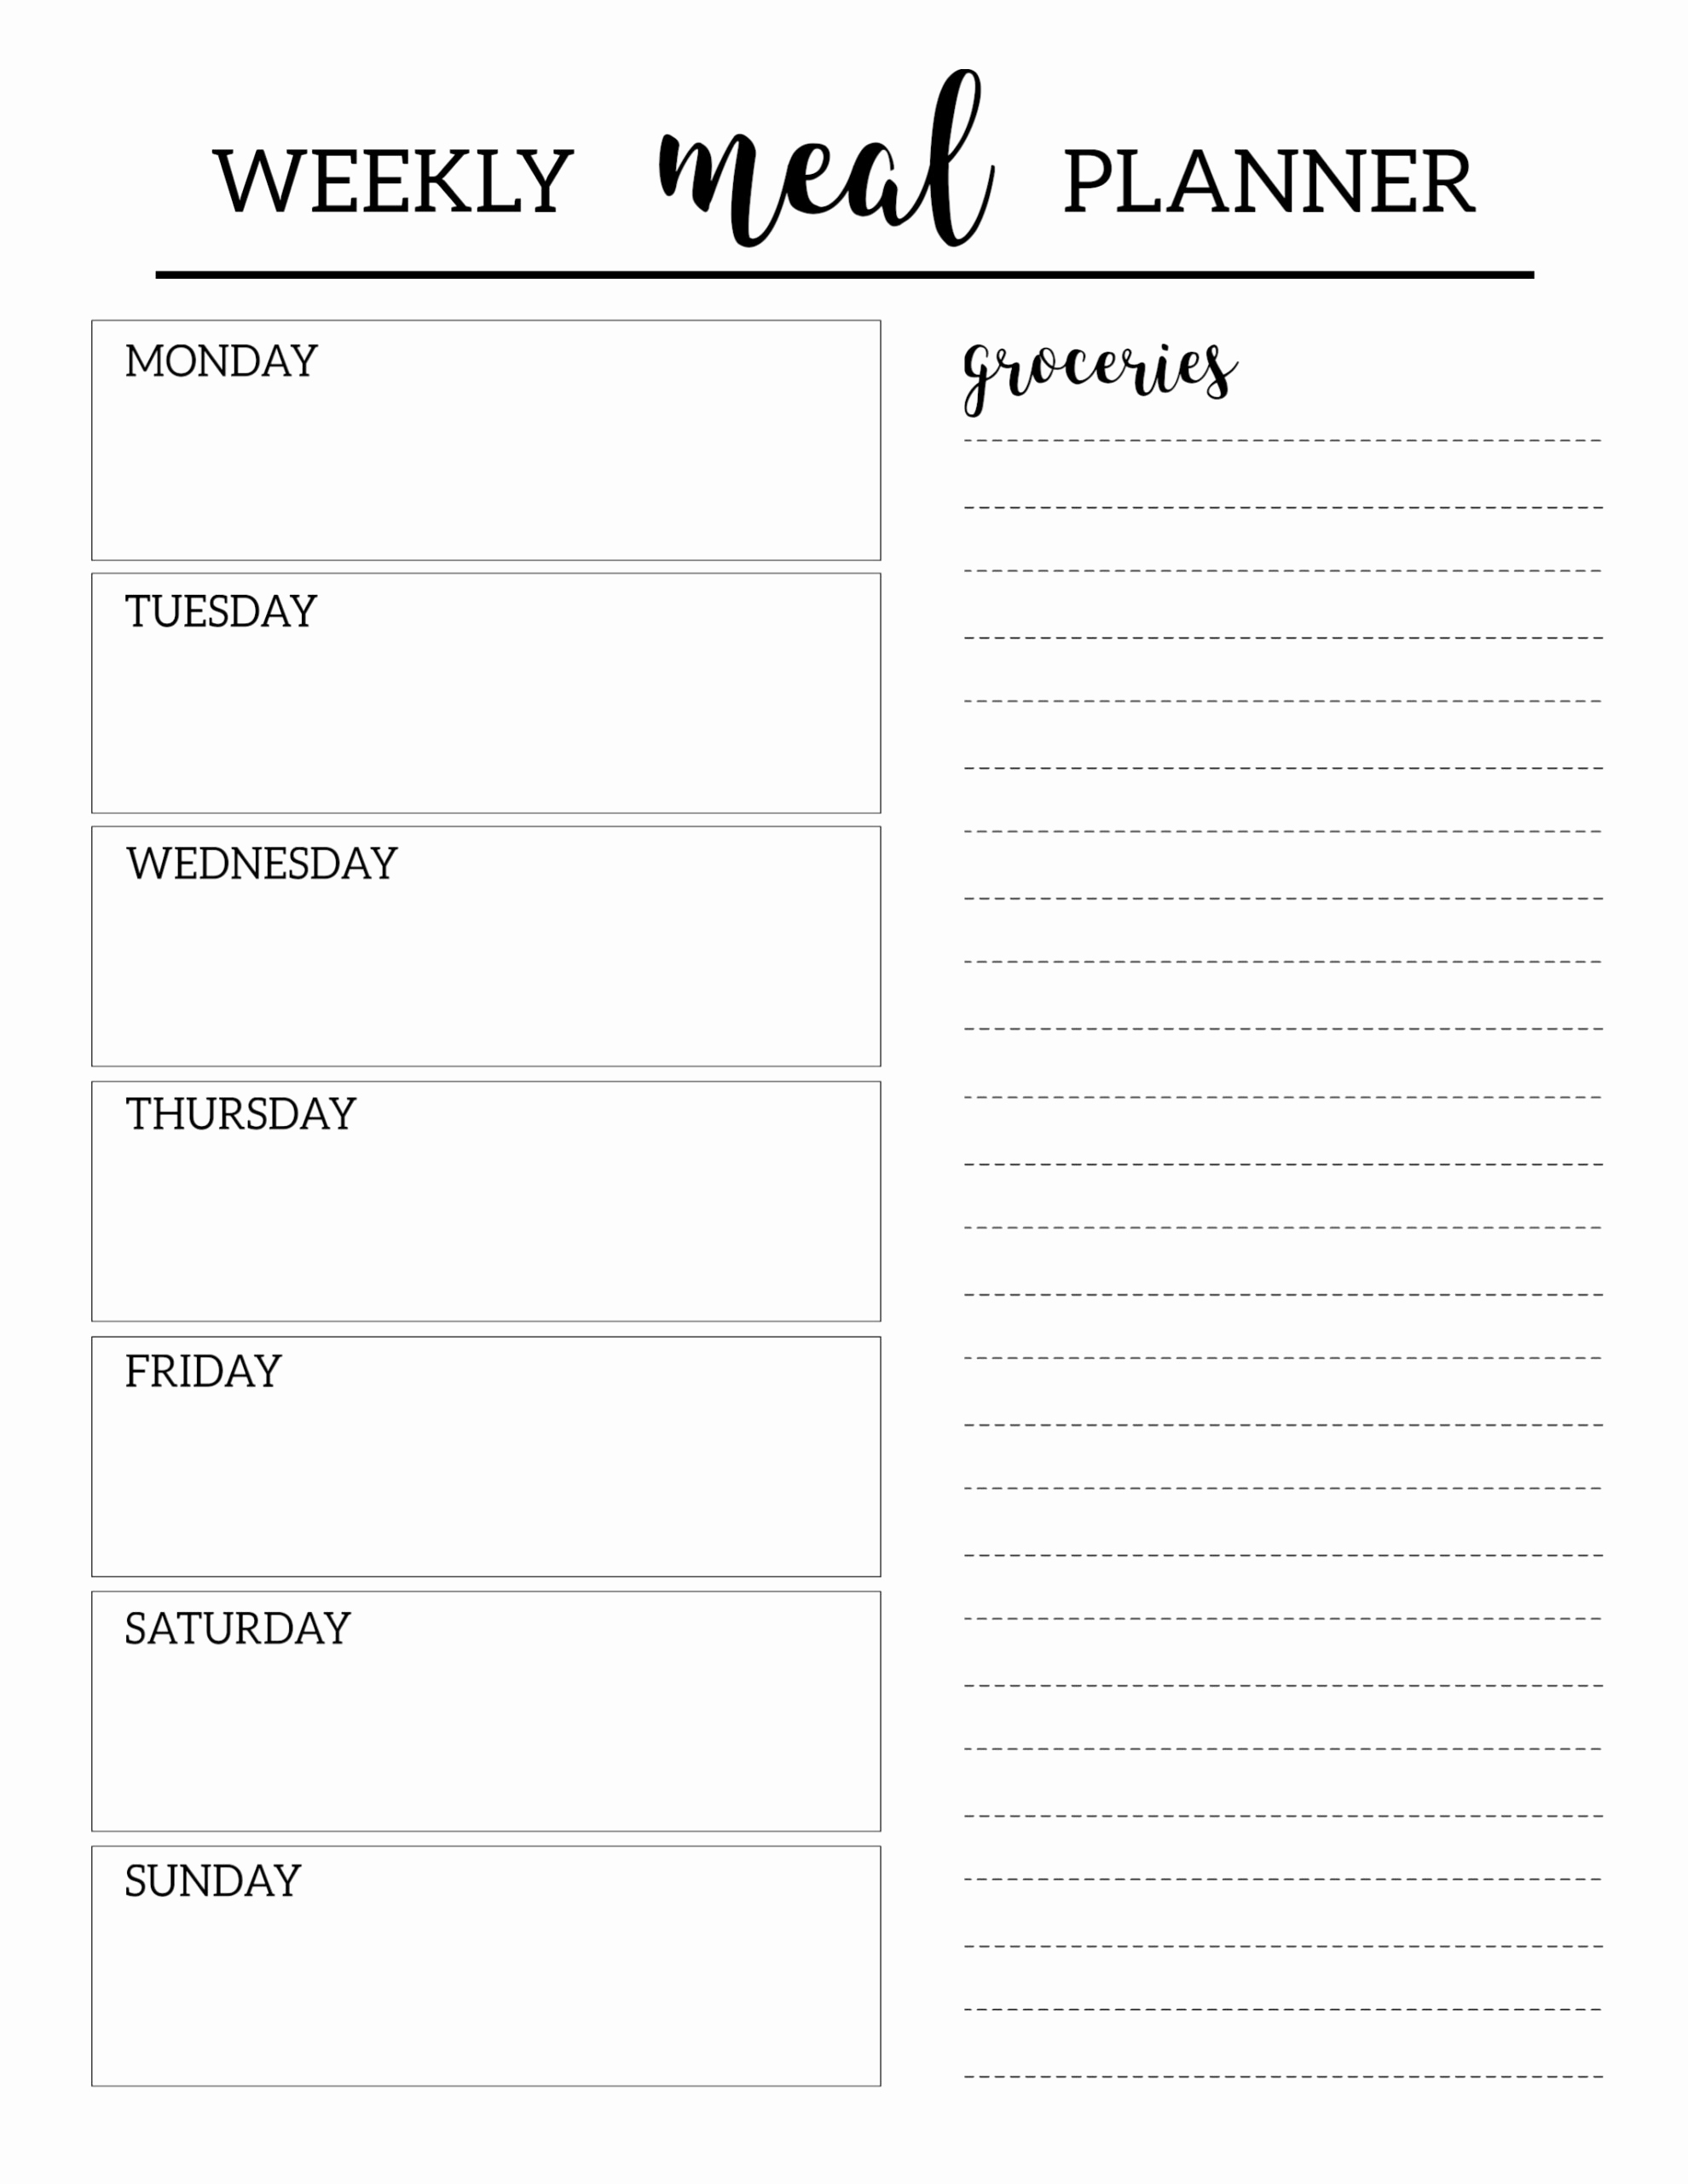 Monthly Meal Planner Template Inspirational Free Printable Meal Planner Template Paper Trail Design